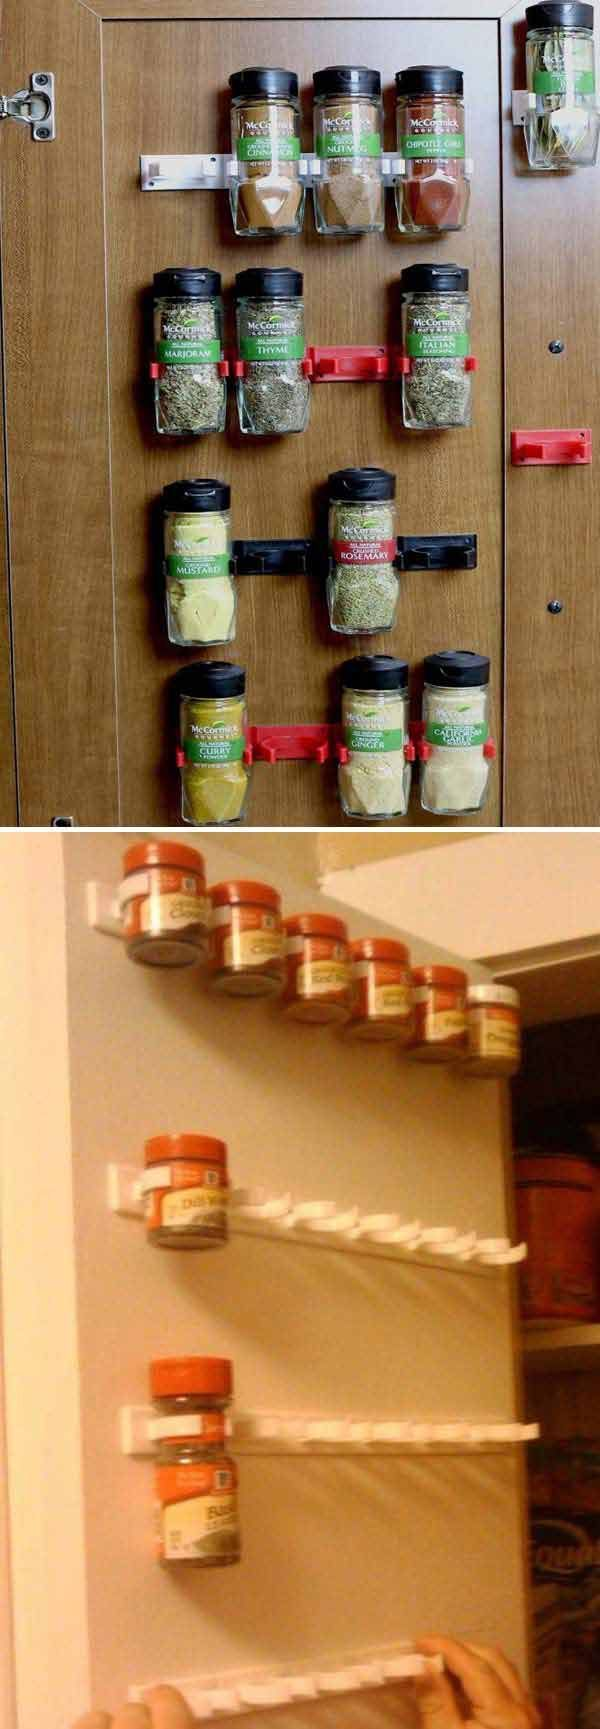 best organization images on pinterest organizers cleaning and